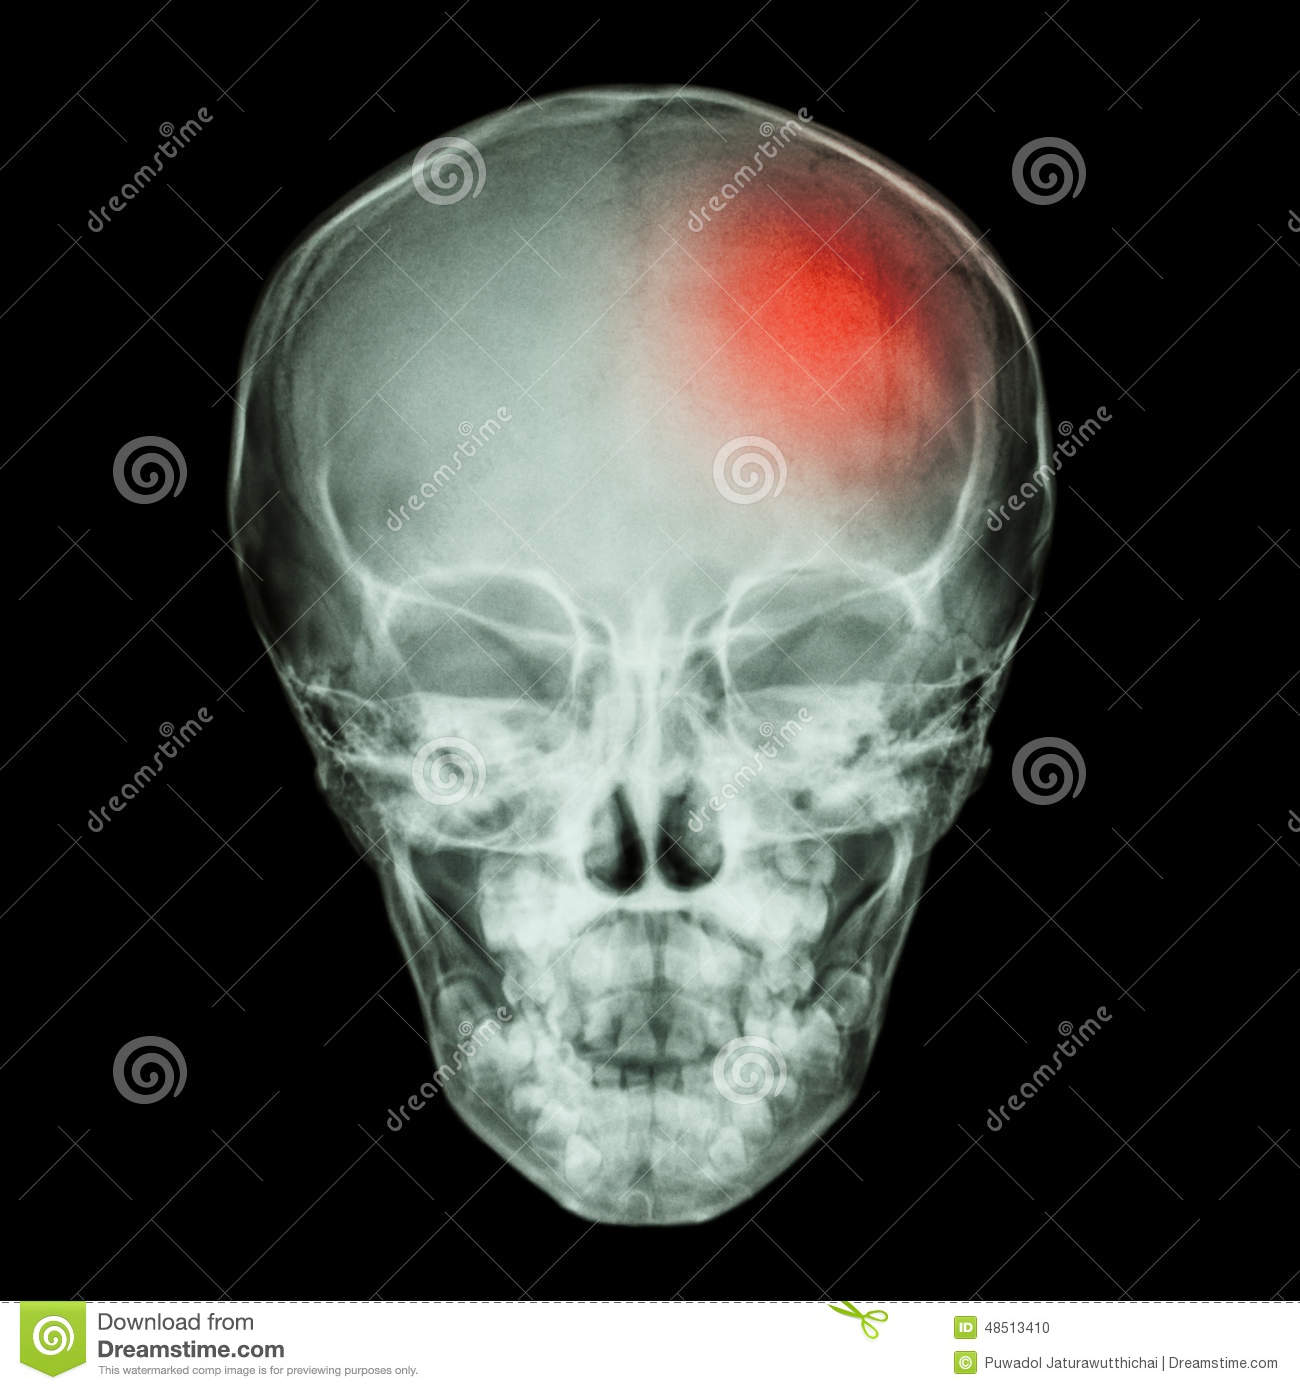 X- ray Skull of child and Stroke (cerebrovascular accident)